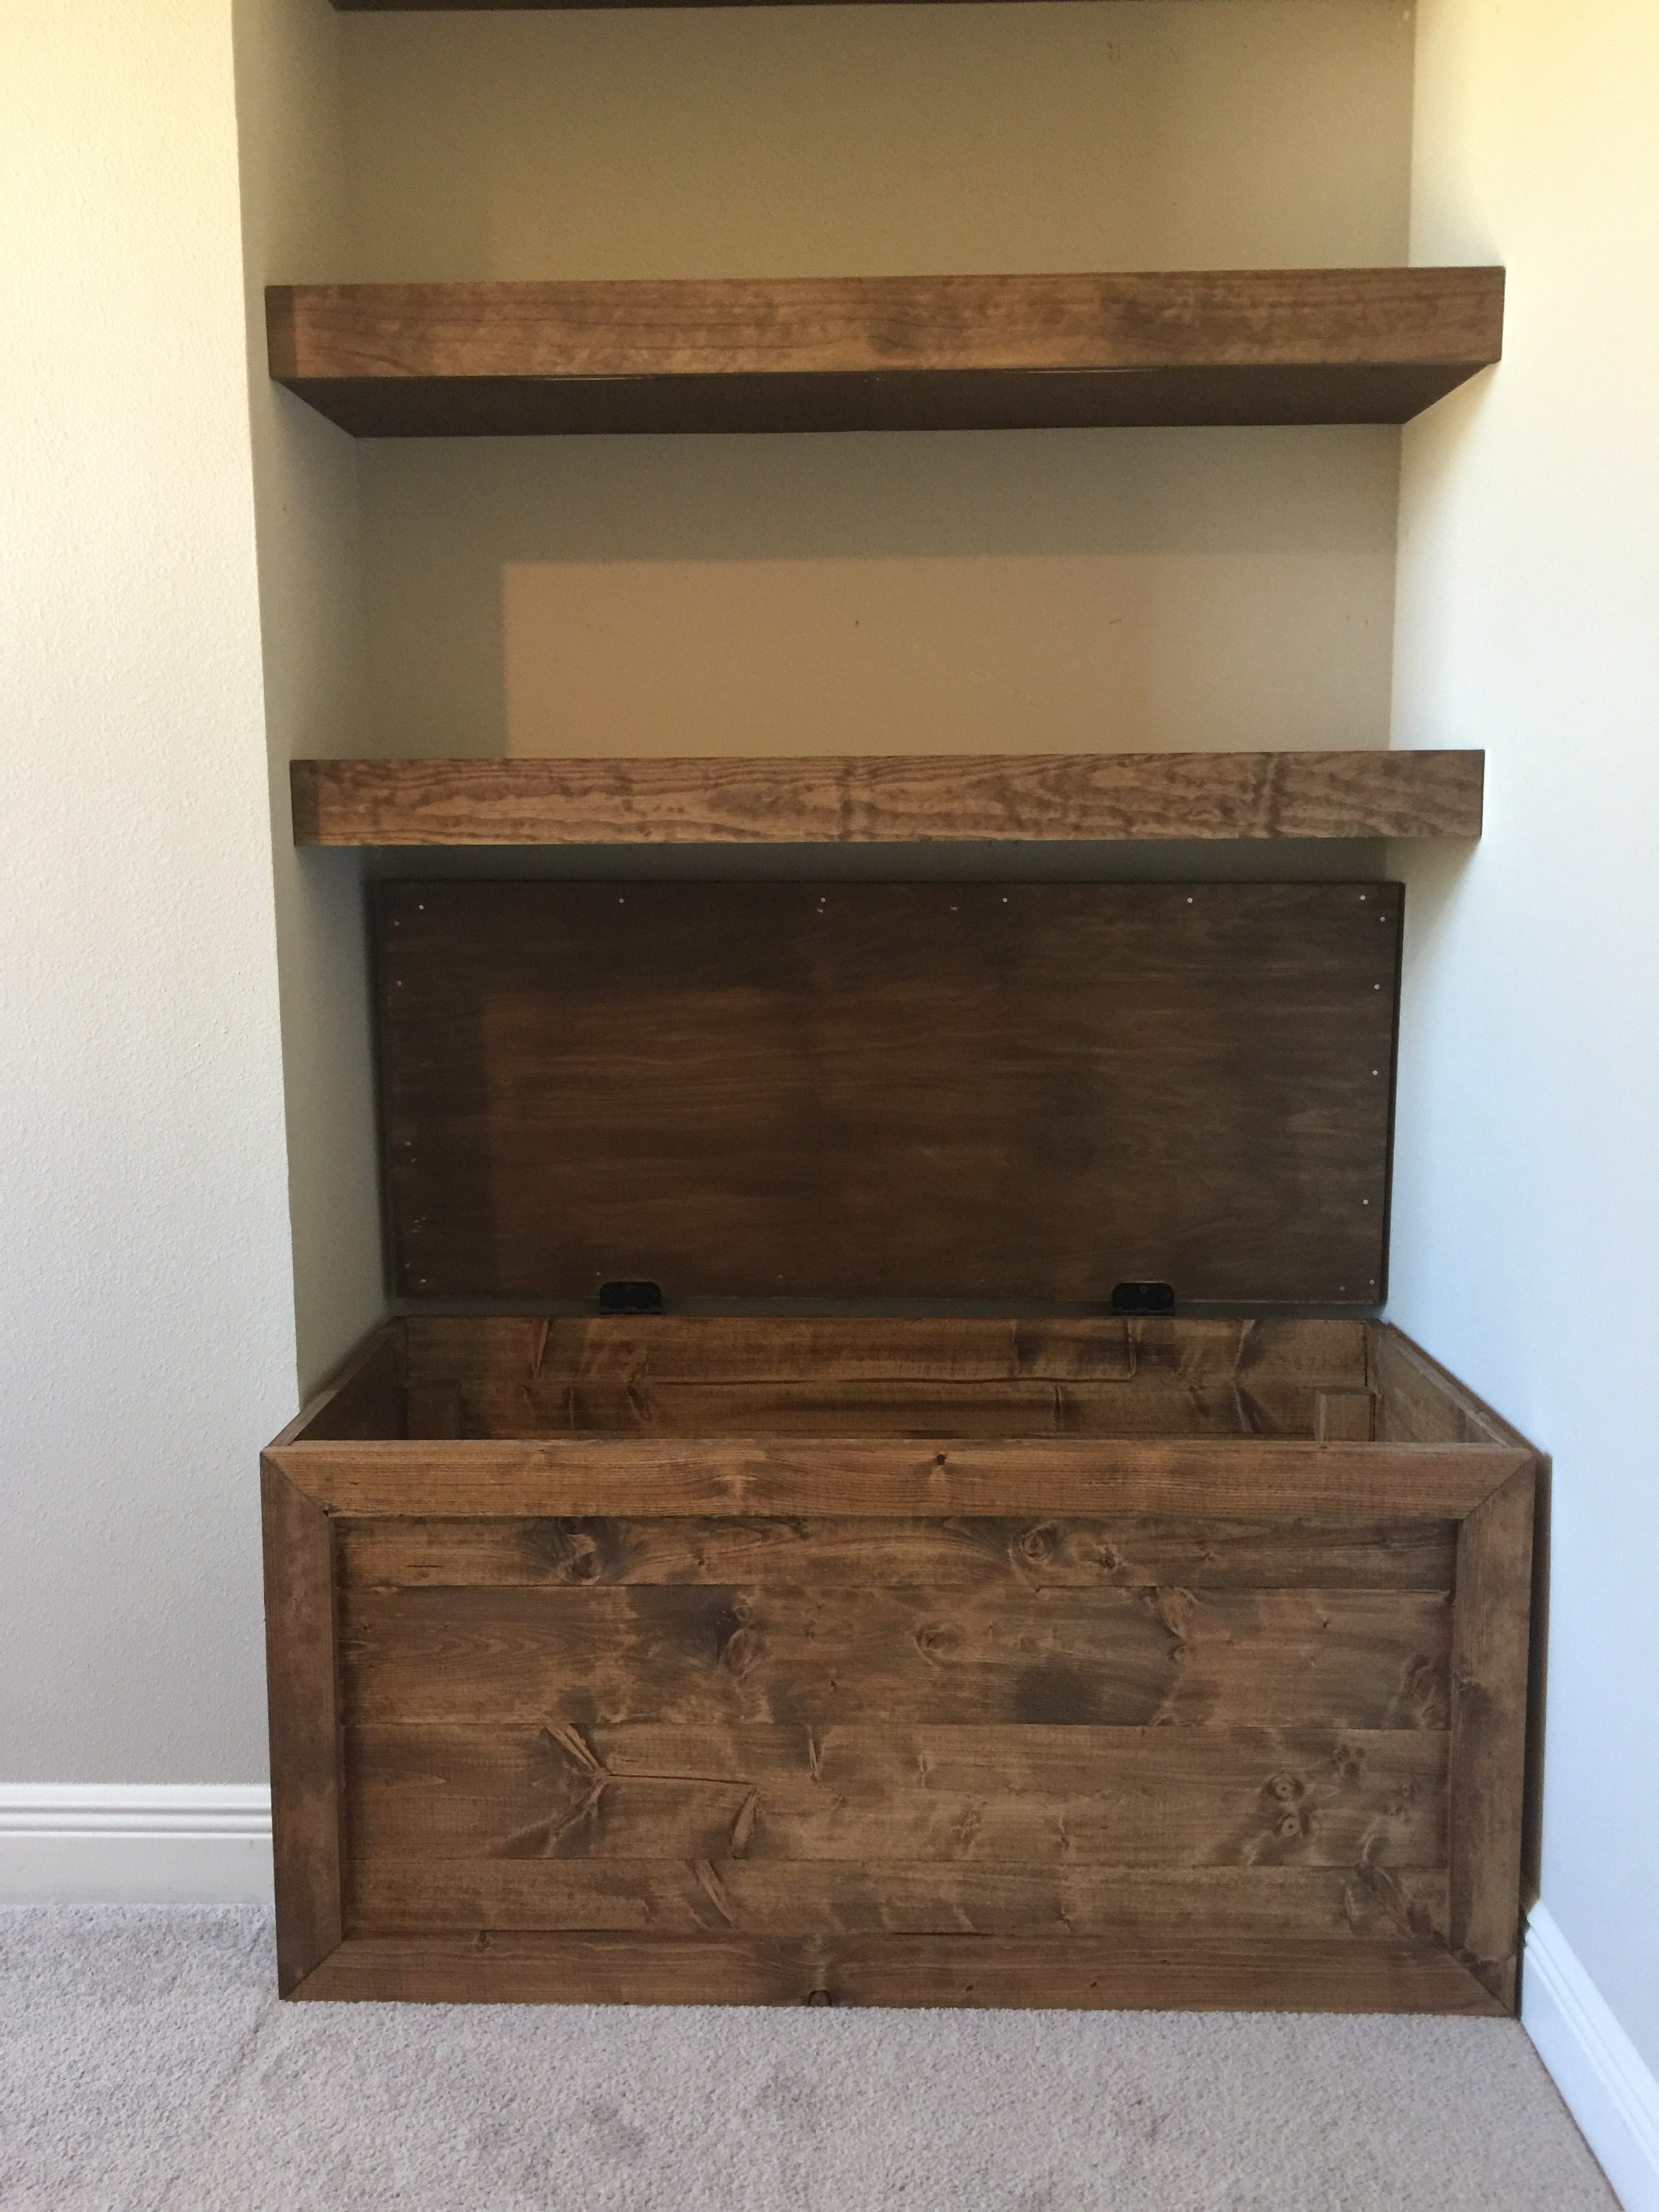 easy diy toy box - frills and drills